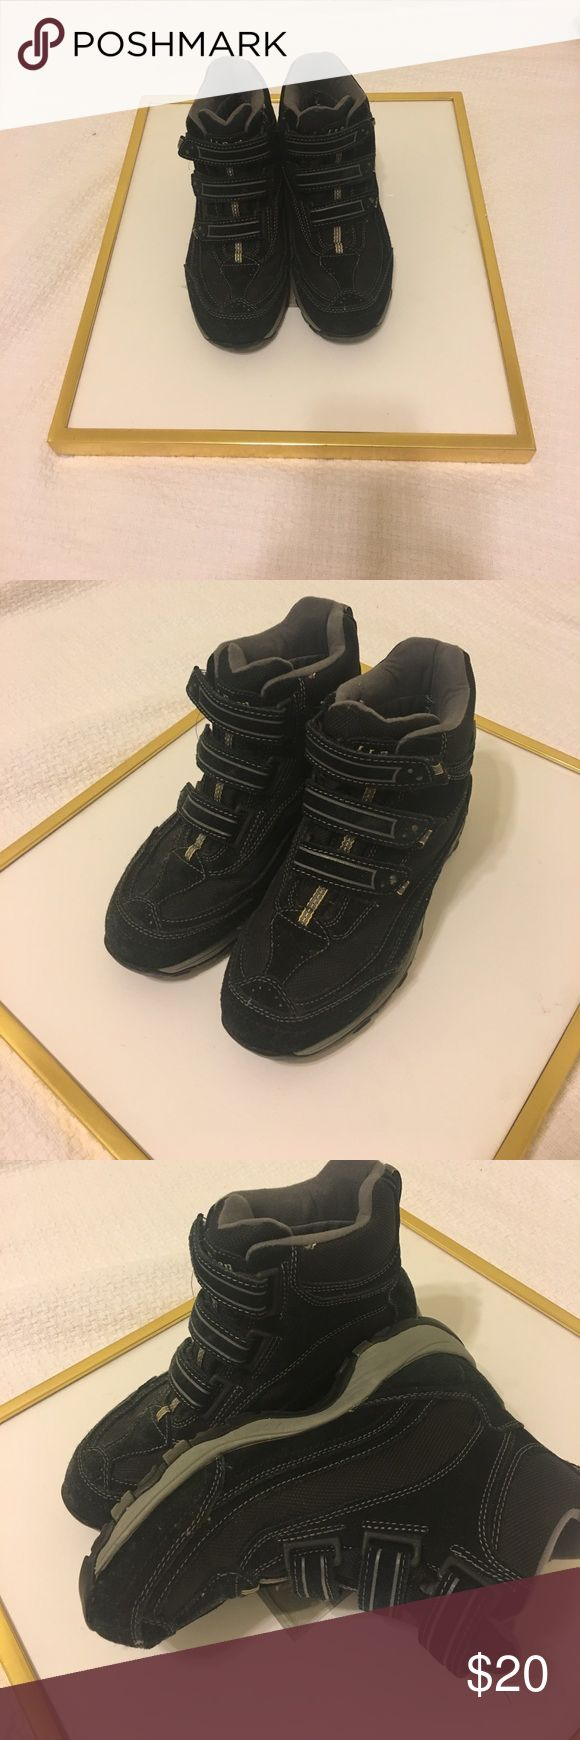 LL Bean Hiking Boots These are lightly worn hiking boots. Very comfortable and cozy. Women's 8 LL Bean Shoes Winter & Rain Boots